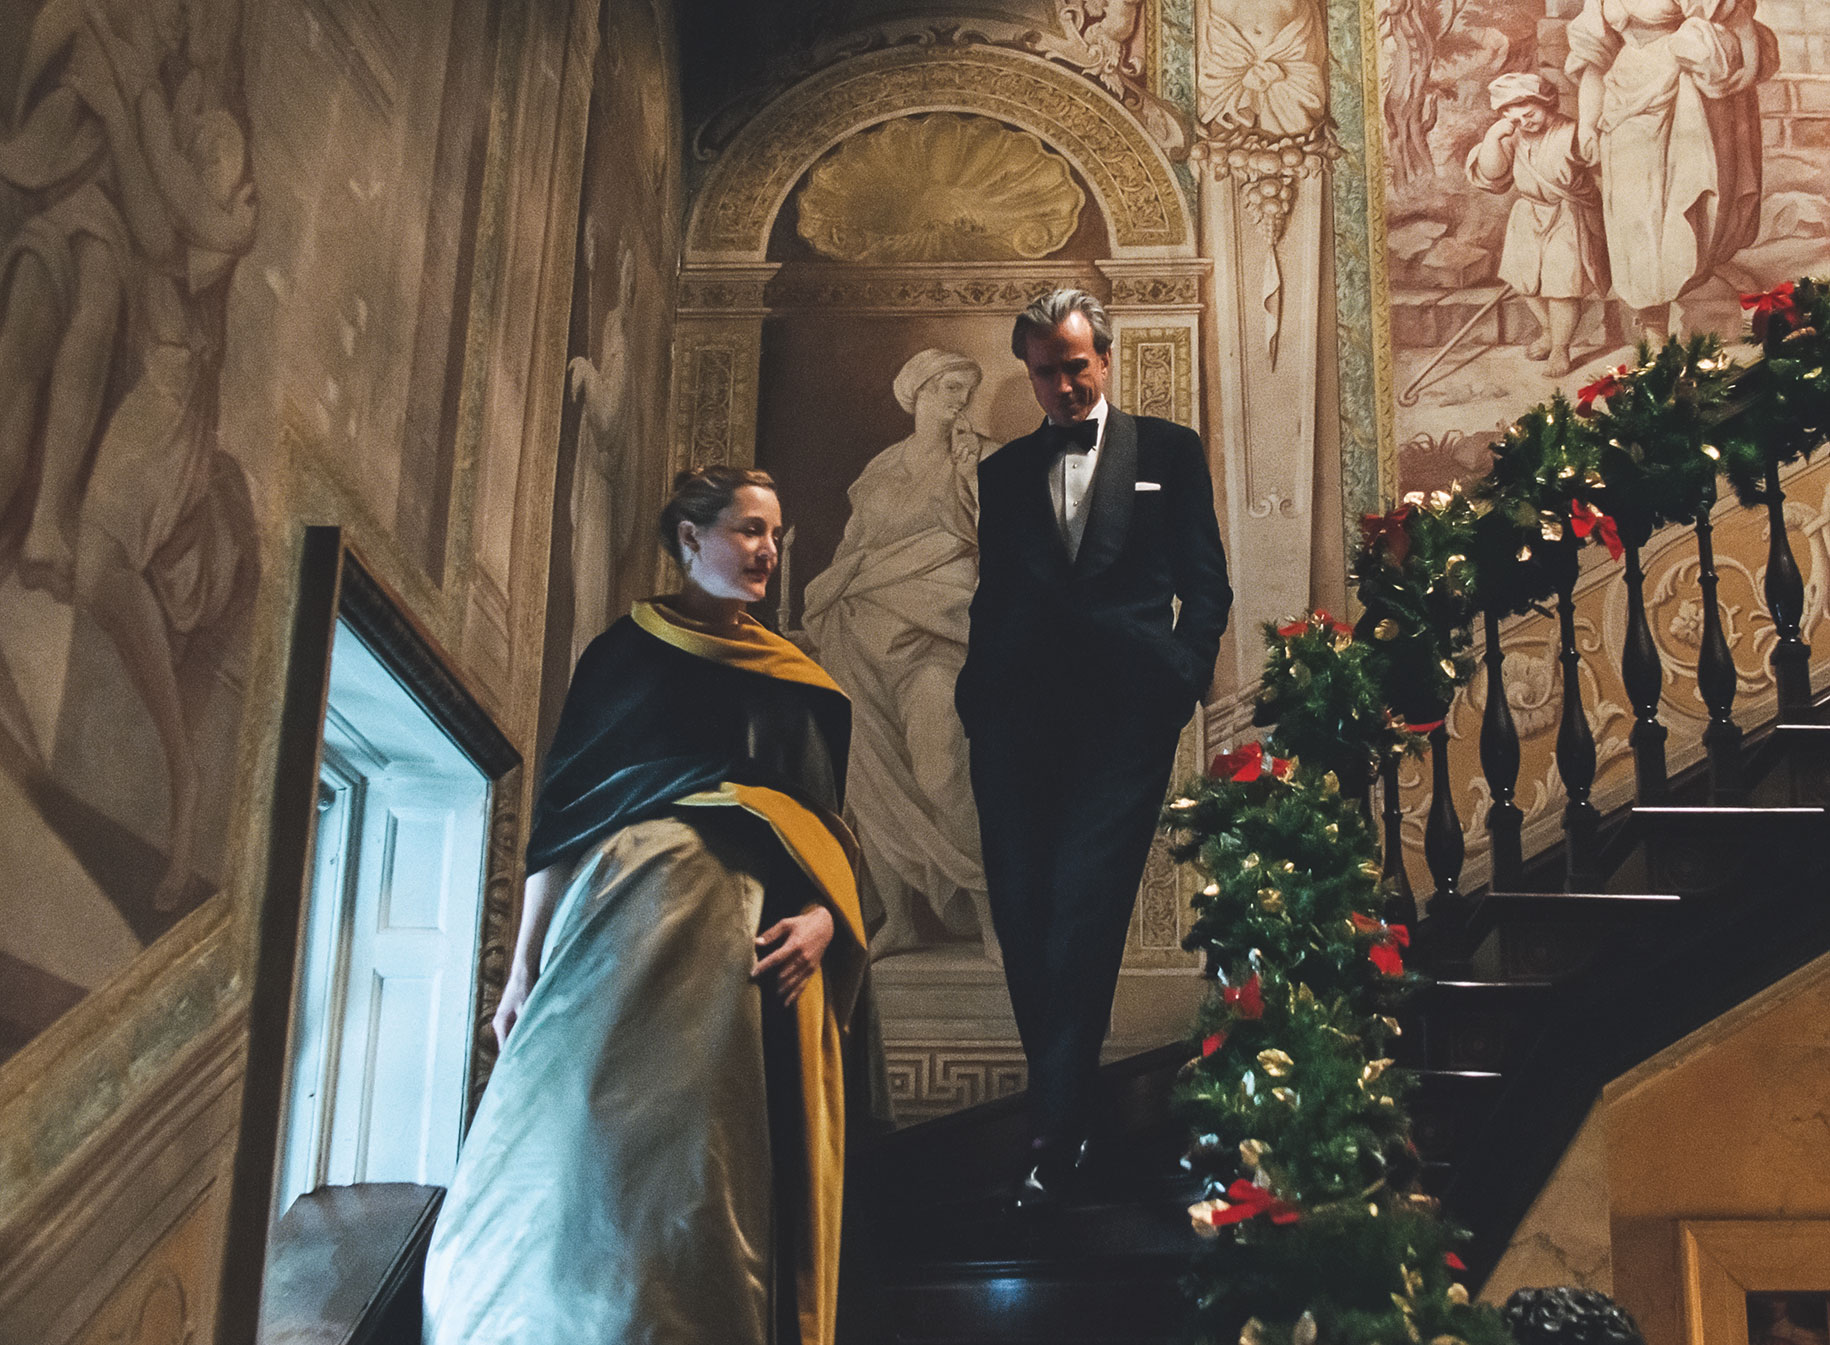 1515543184_phantom_thread_unit_daniel_day_lewis_vicky_krieps_10.jpg